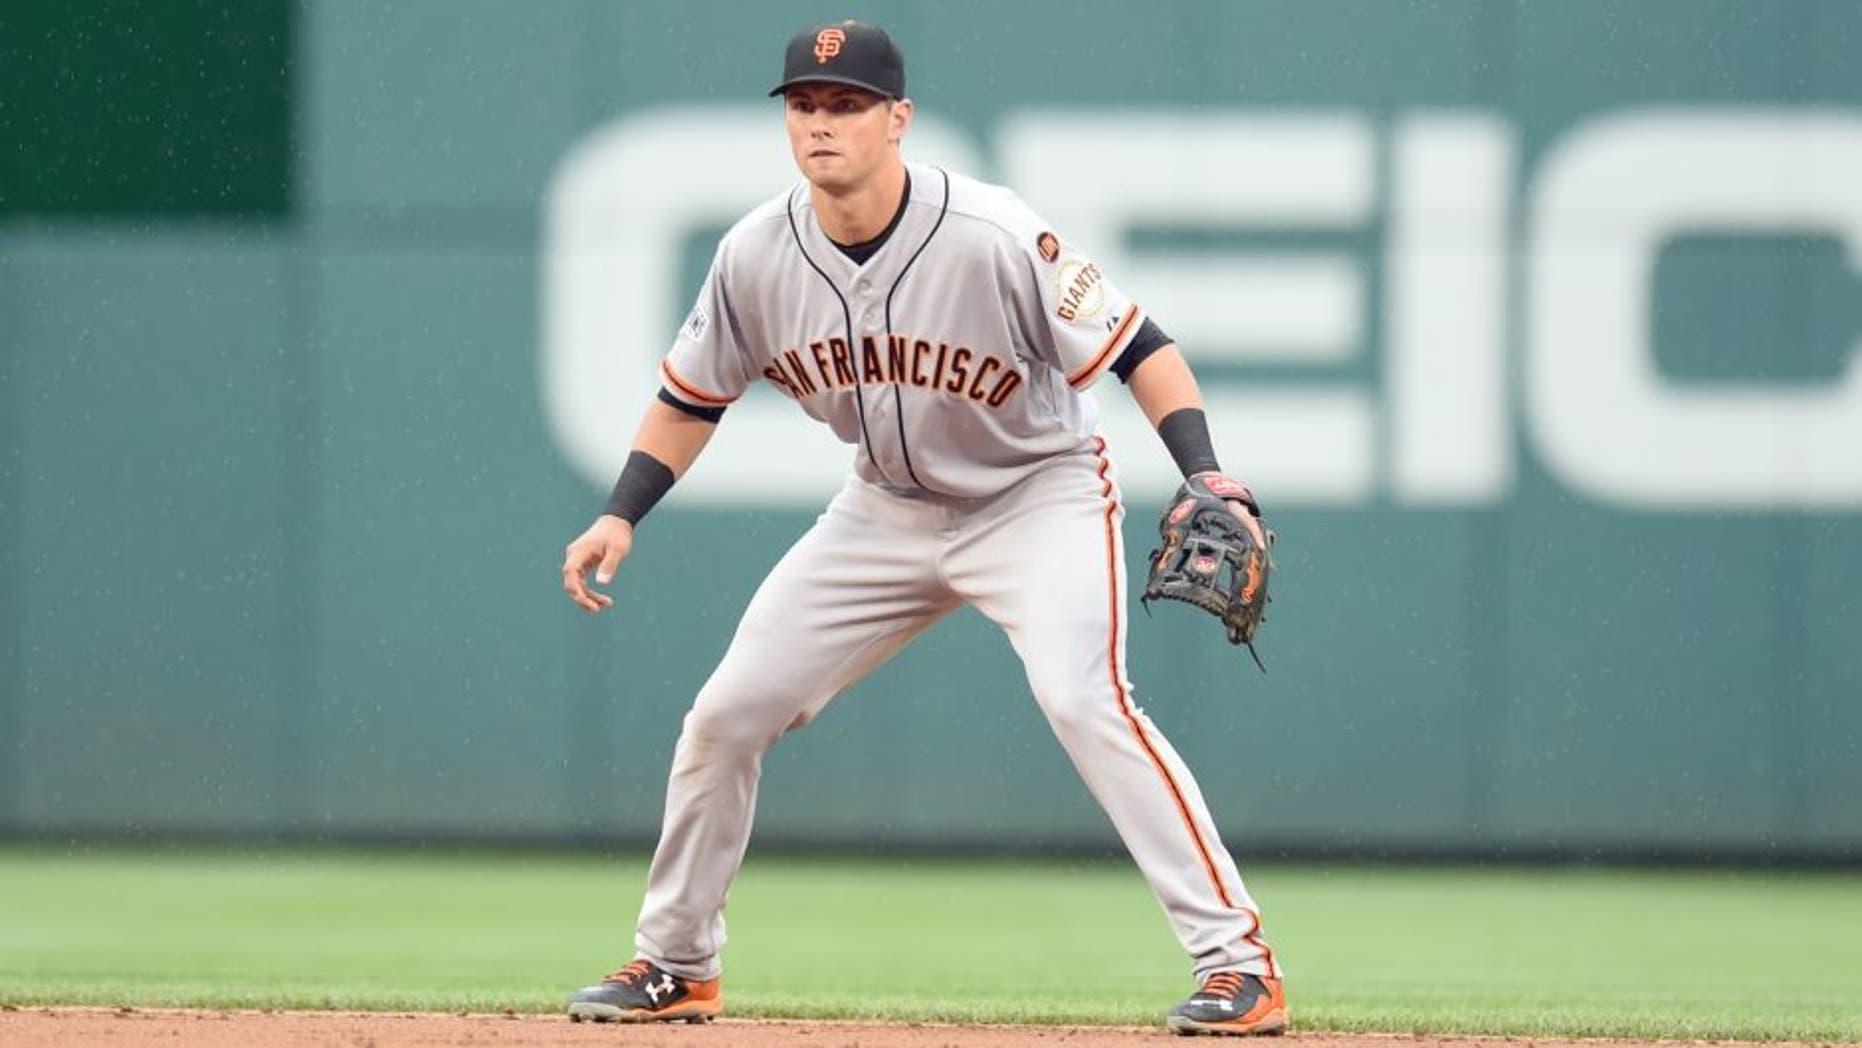 WASHINGTON, DC - JULY 03: Joe Panik #12 of the San Francisco Giants in position during a baseball game against the Washington Nationals at Nationals Park on July 03, 2015 in Washington, DC. The Nationals won 2-1. (Photo by Mitchell Layton/Getty Images)